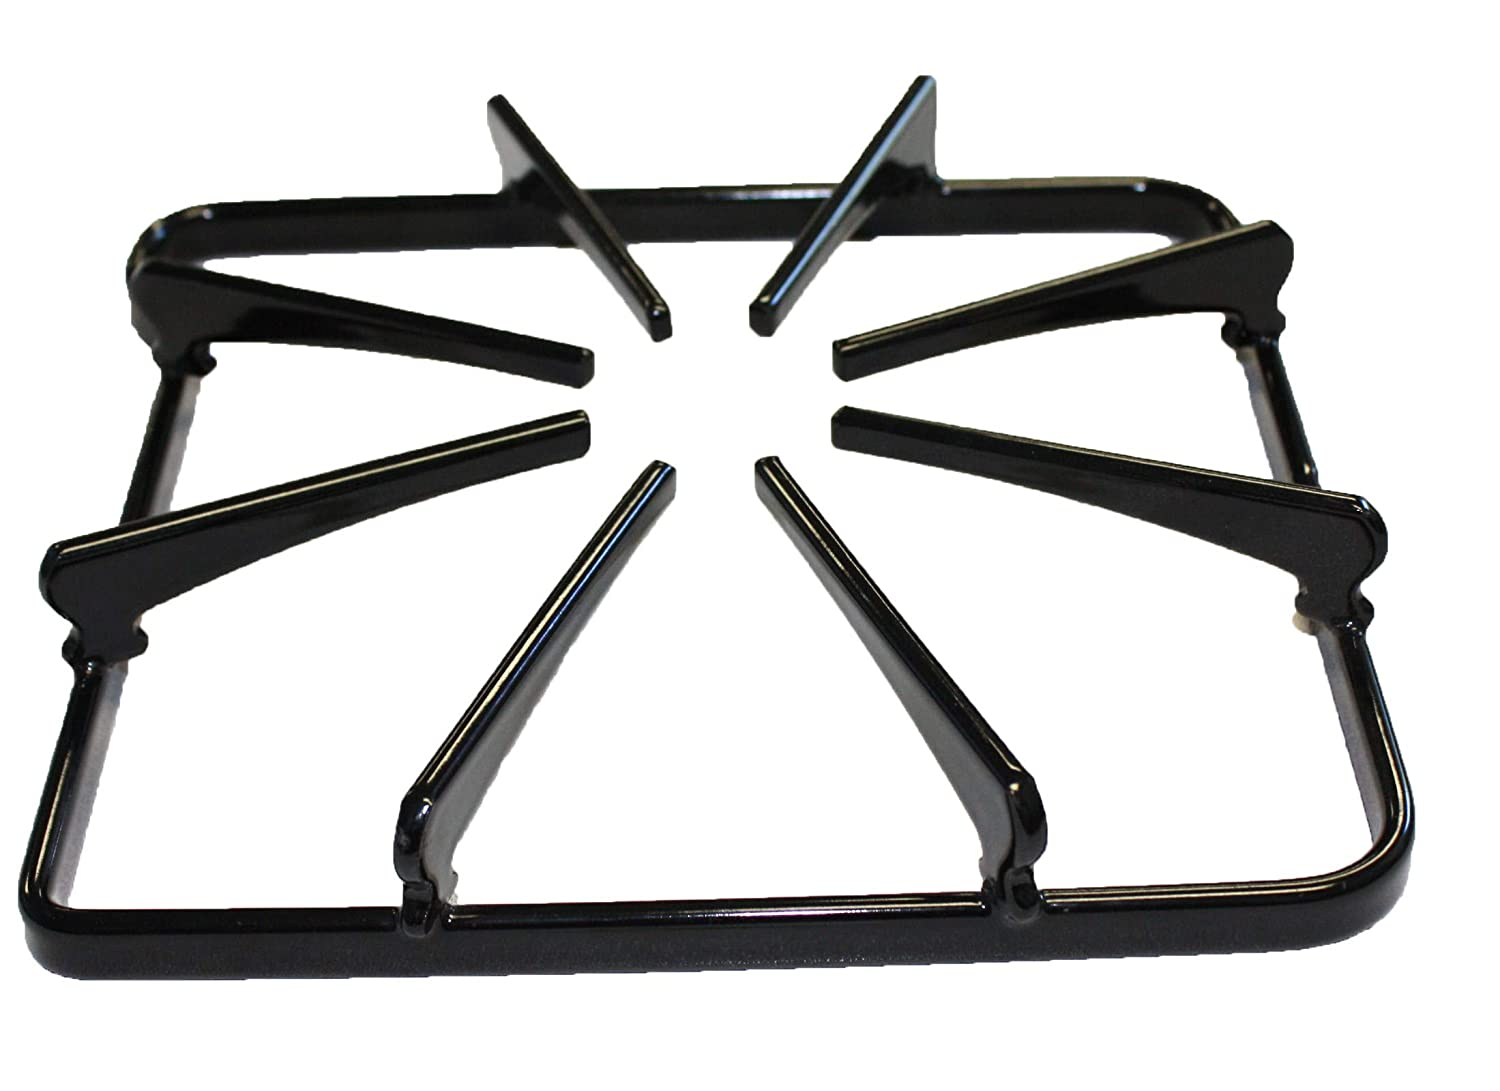 GRP STOVE/RANGE/COOKTOP BURNER GRATE Replacement for MAYTAG WHIRLPOOL Part # WP7518P464-60